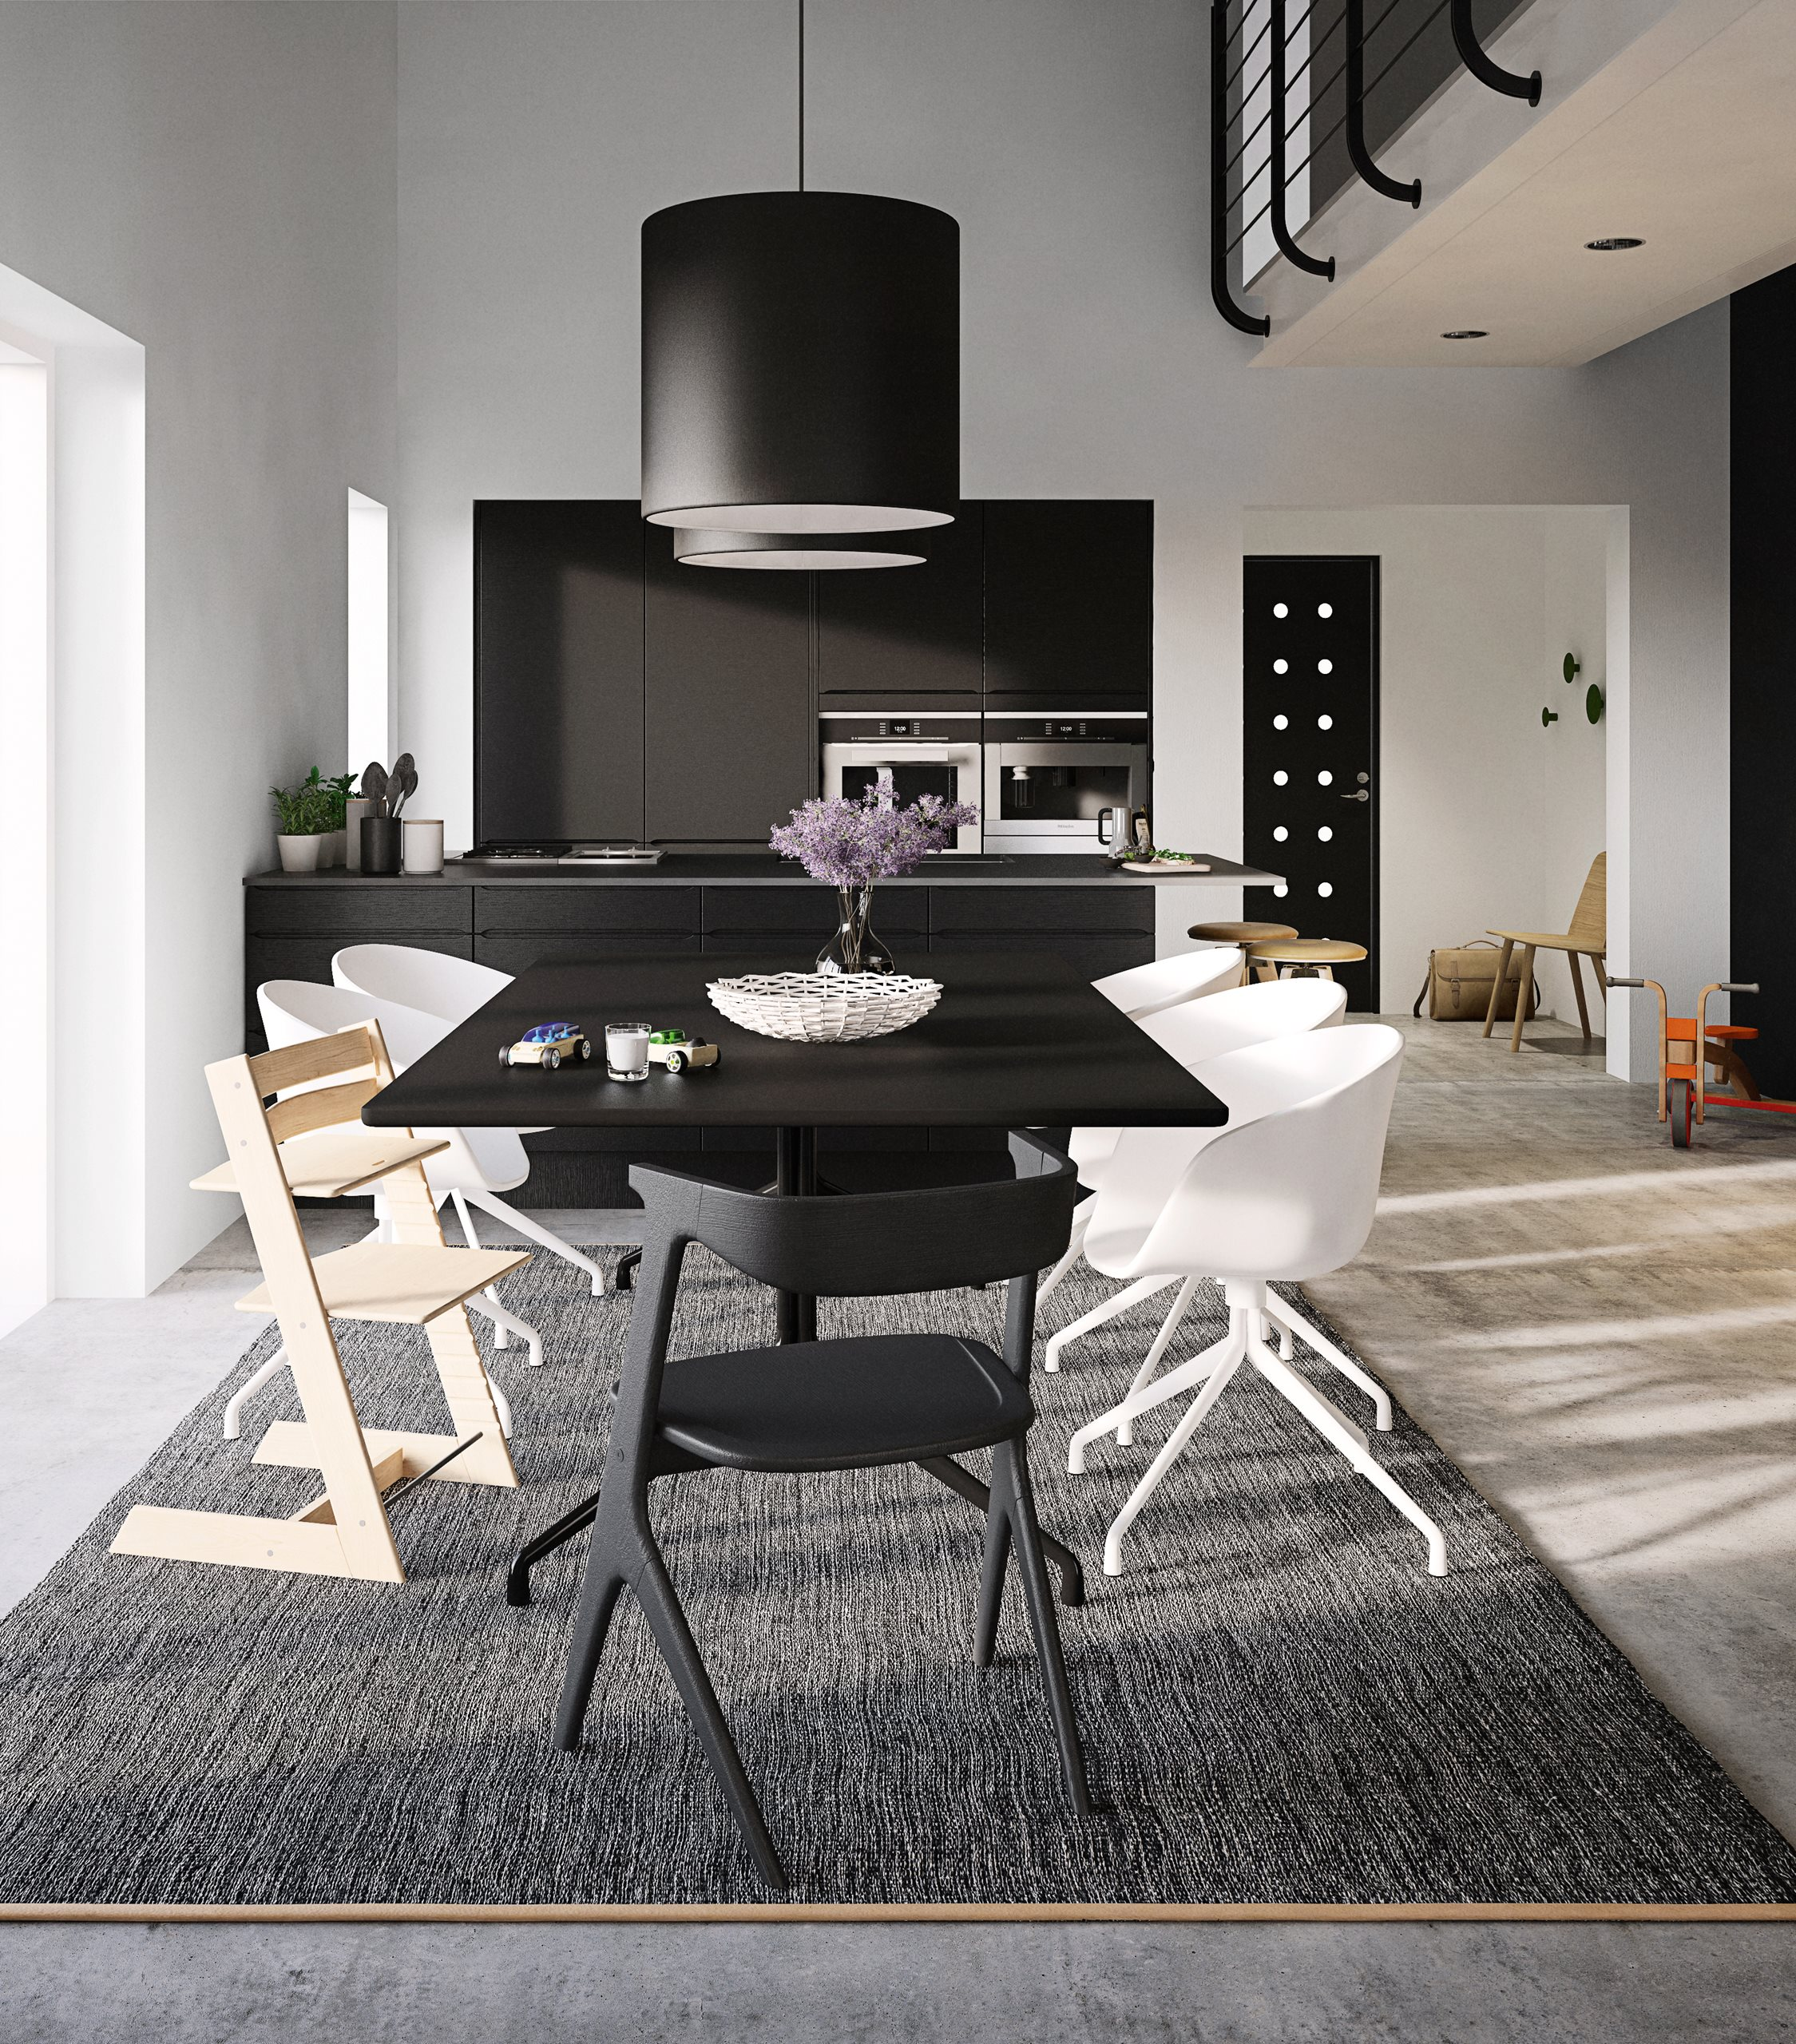 Domino-black-interior-scenery